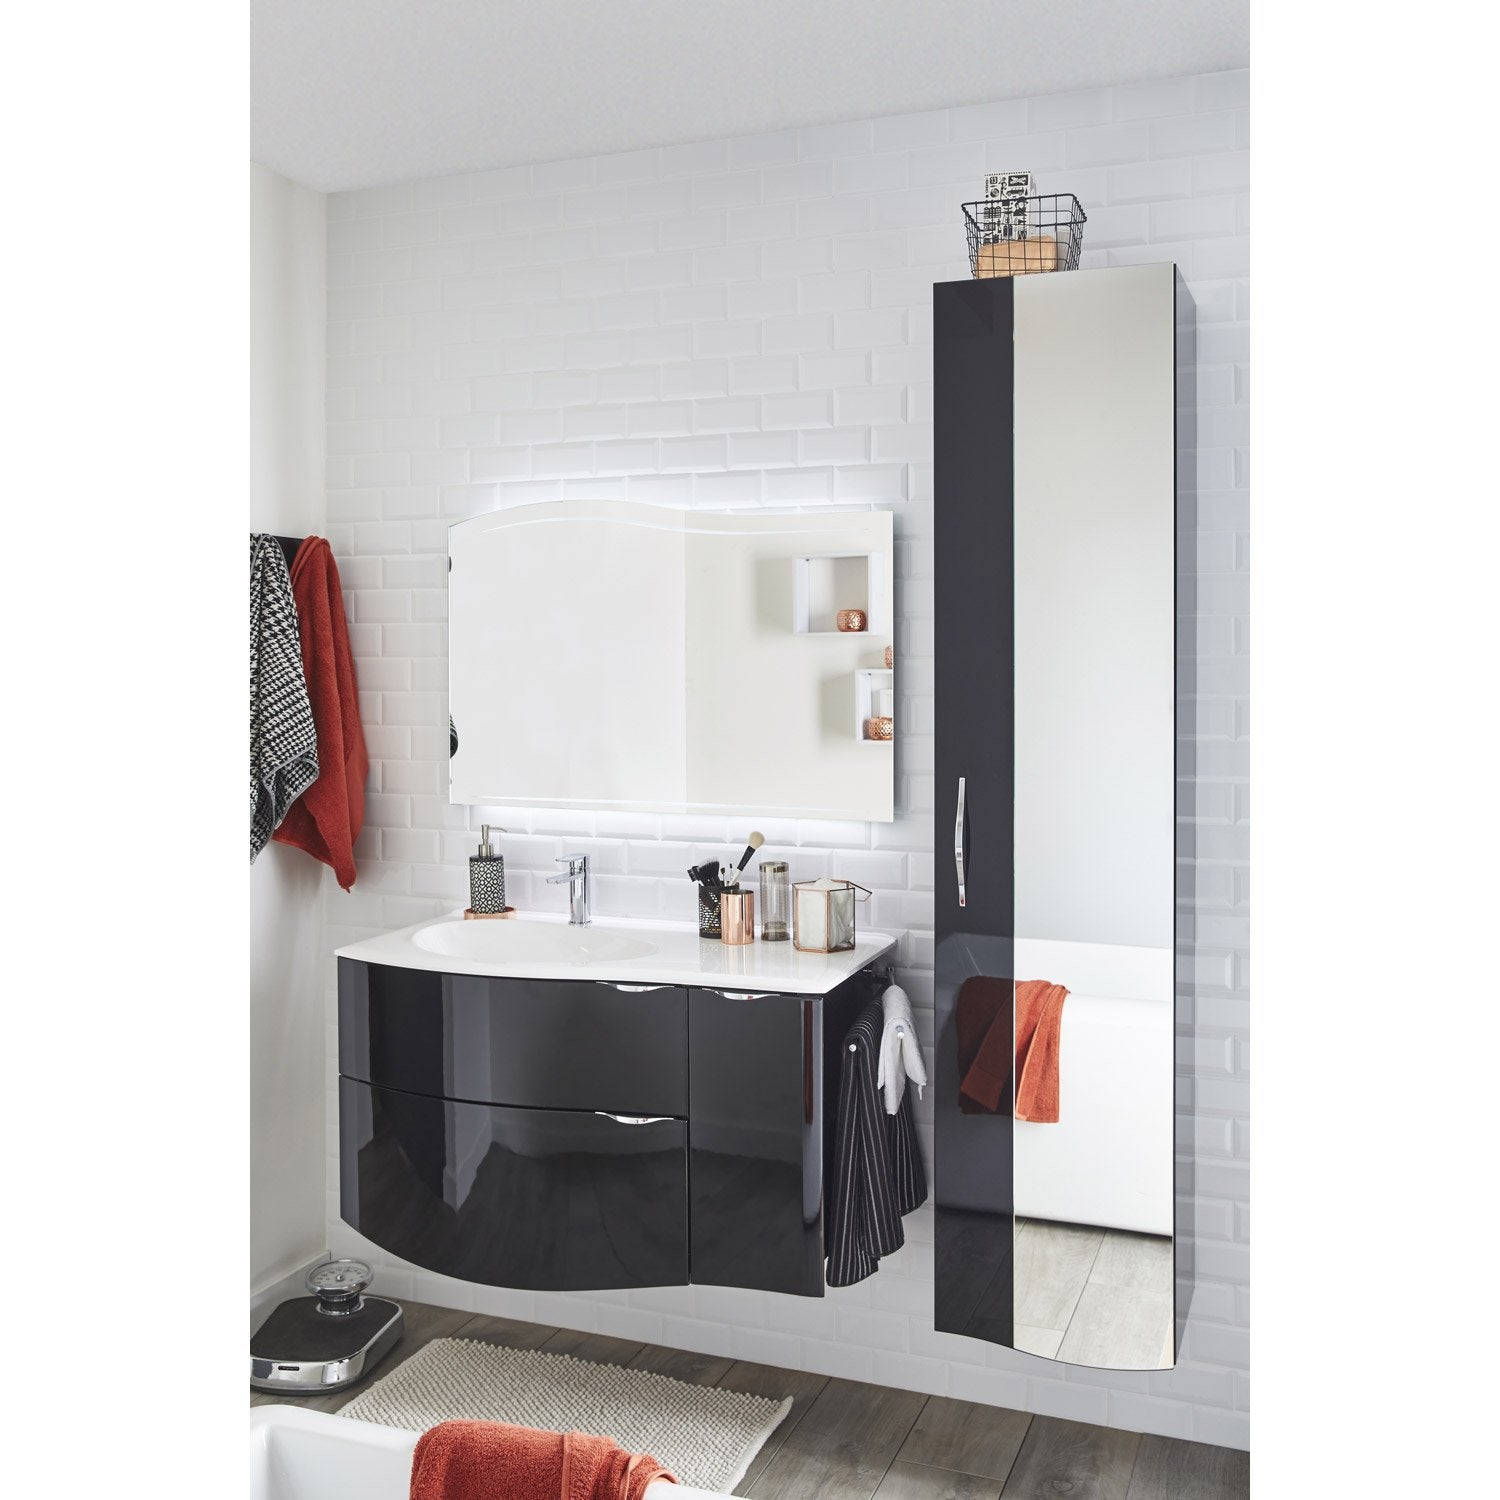 meuble salle de bain promo leroy merlin. Black Bedroom Furniture Sets. Home Design Ideas